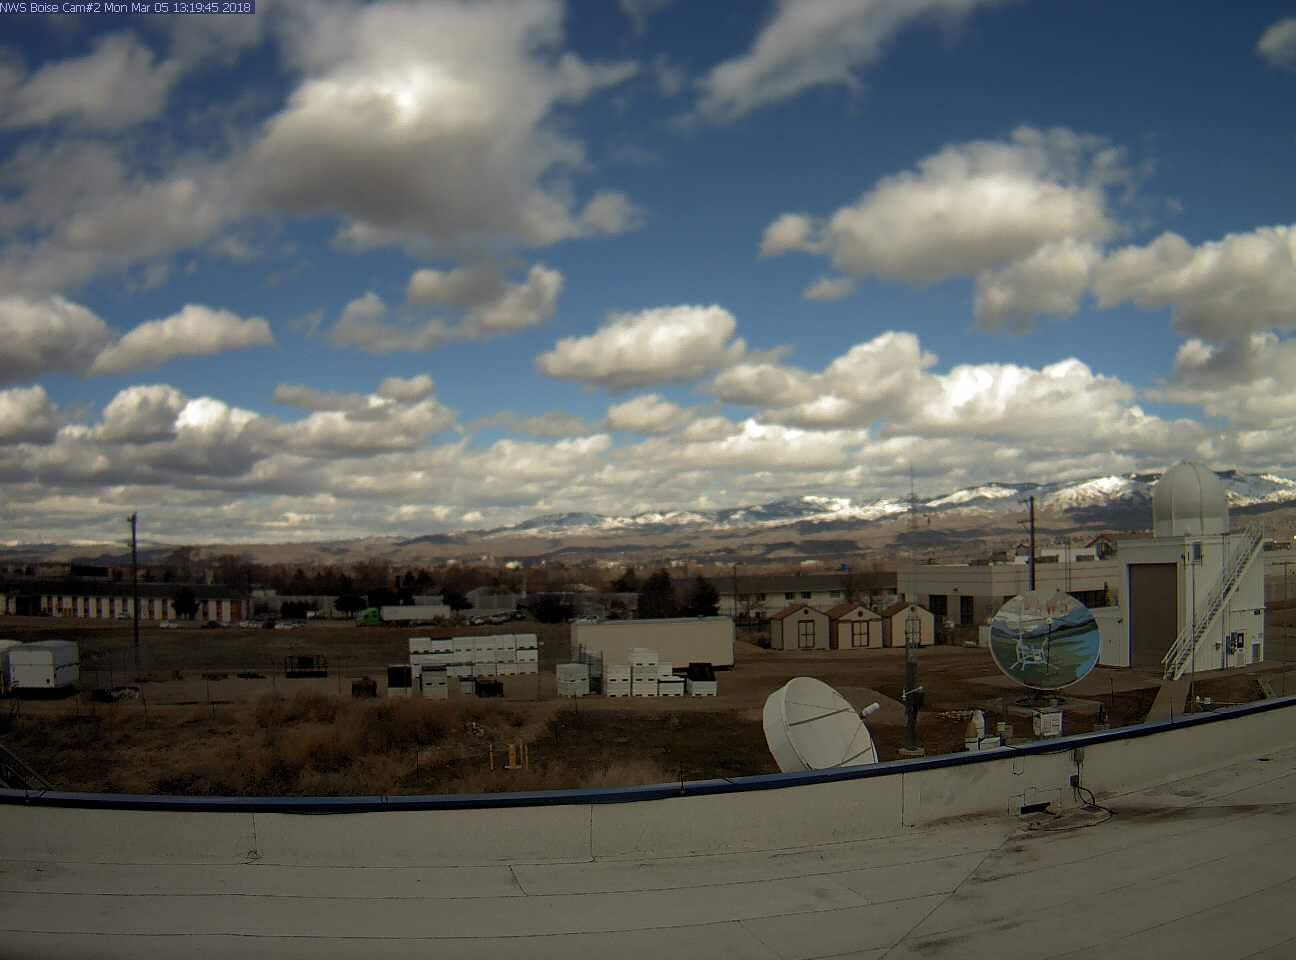 Get The Big Picture for Bogus Basin, Foothill NWS Click!